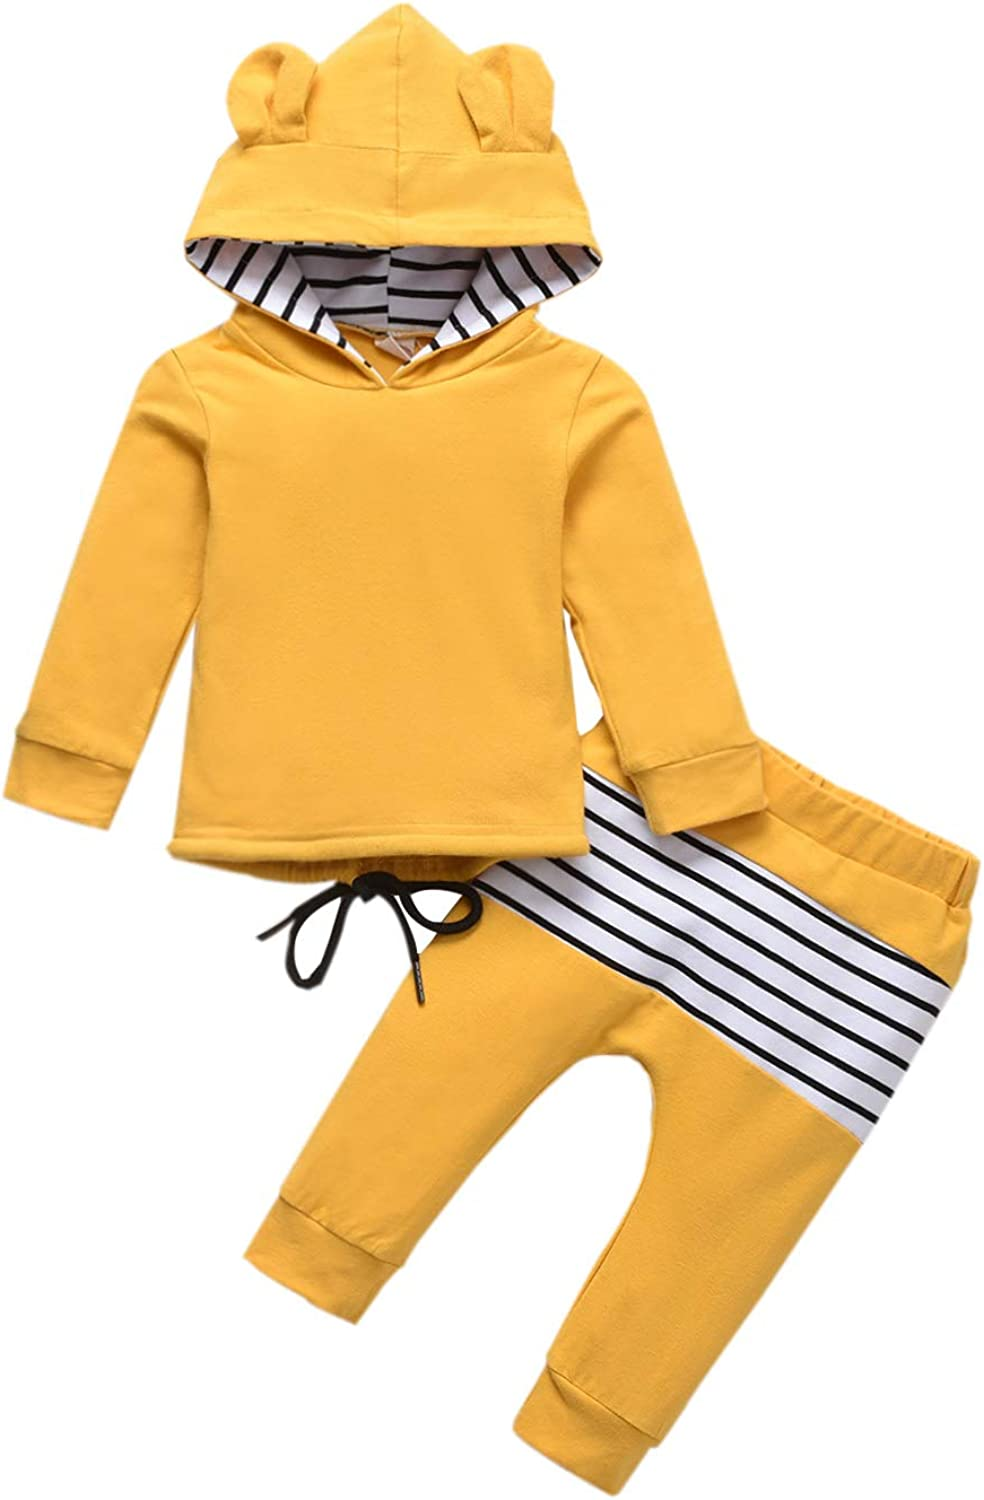 Toddler Baby Boy Girl Fall/Winter Clothes Stripe Outfits Bear-Eared Hoodie Tops Sweatshirt Suit Sets for Unisex